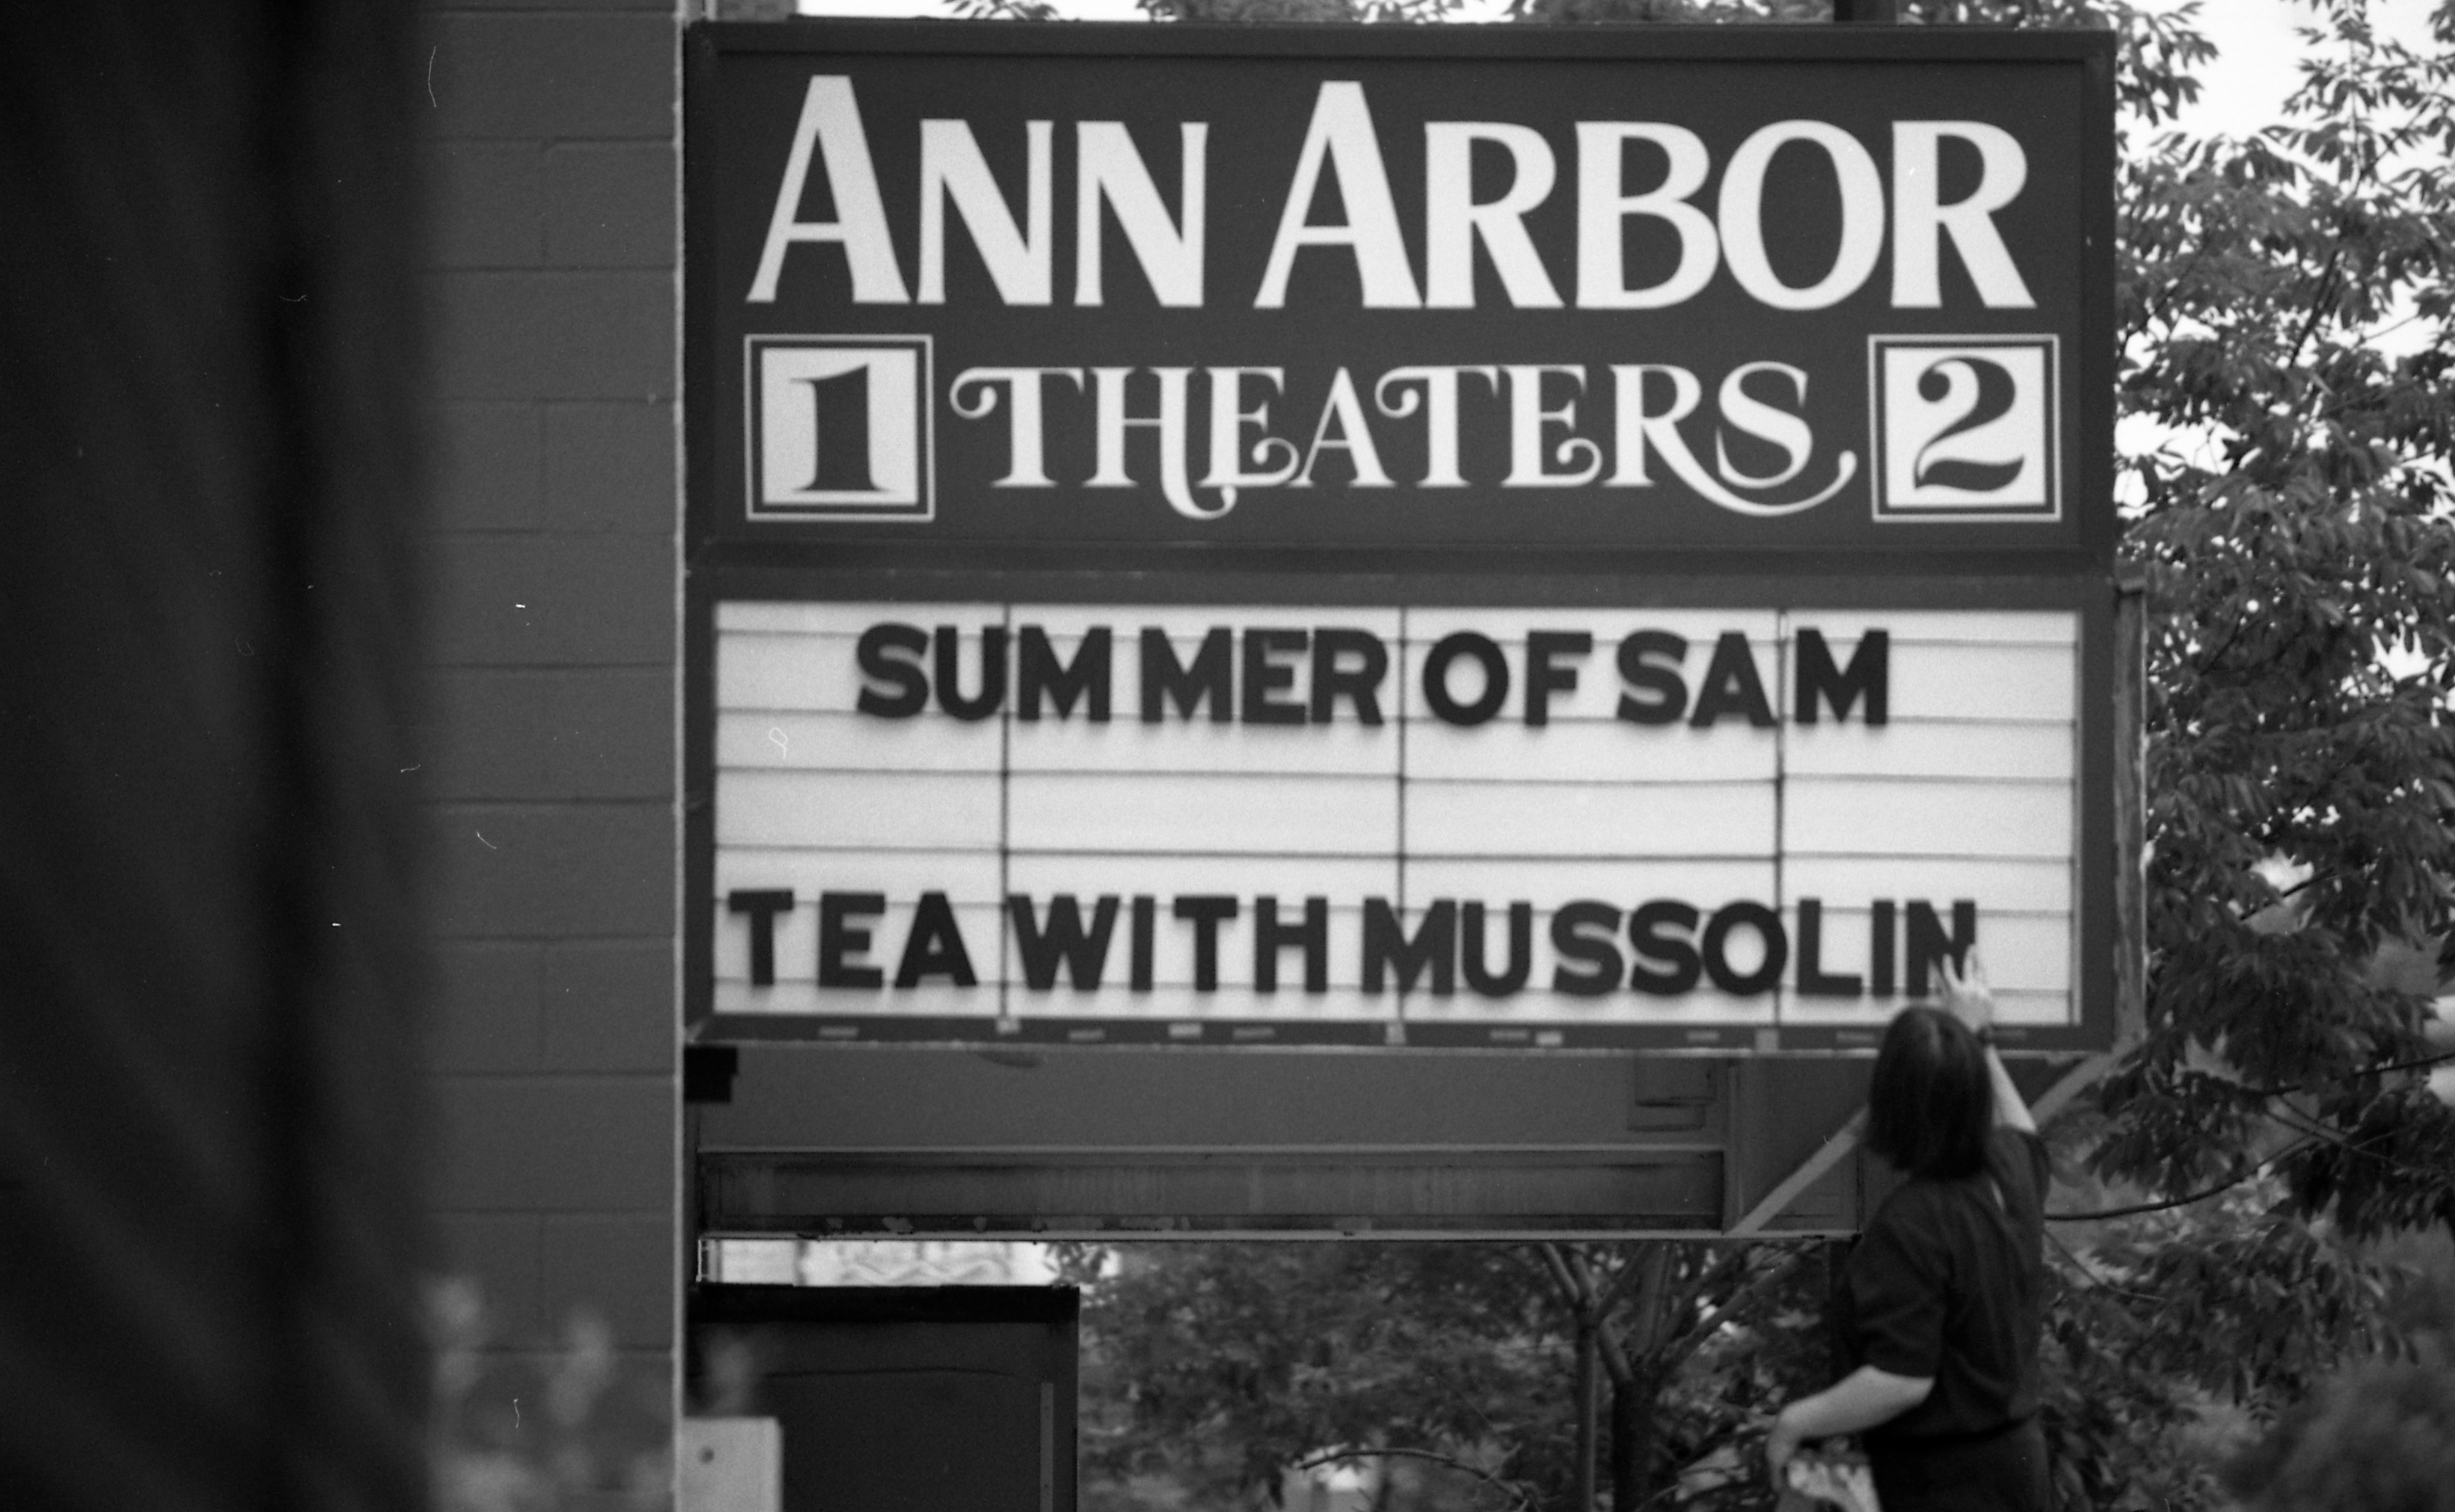 Ann Arbor Theaters 1 & 2, 210 S Fifth Ave, Manager Sue Heckenbrook, Changing Marquee, July 1999 image